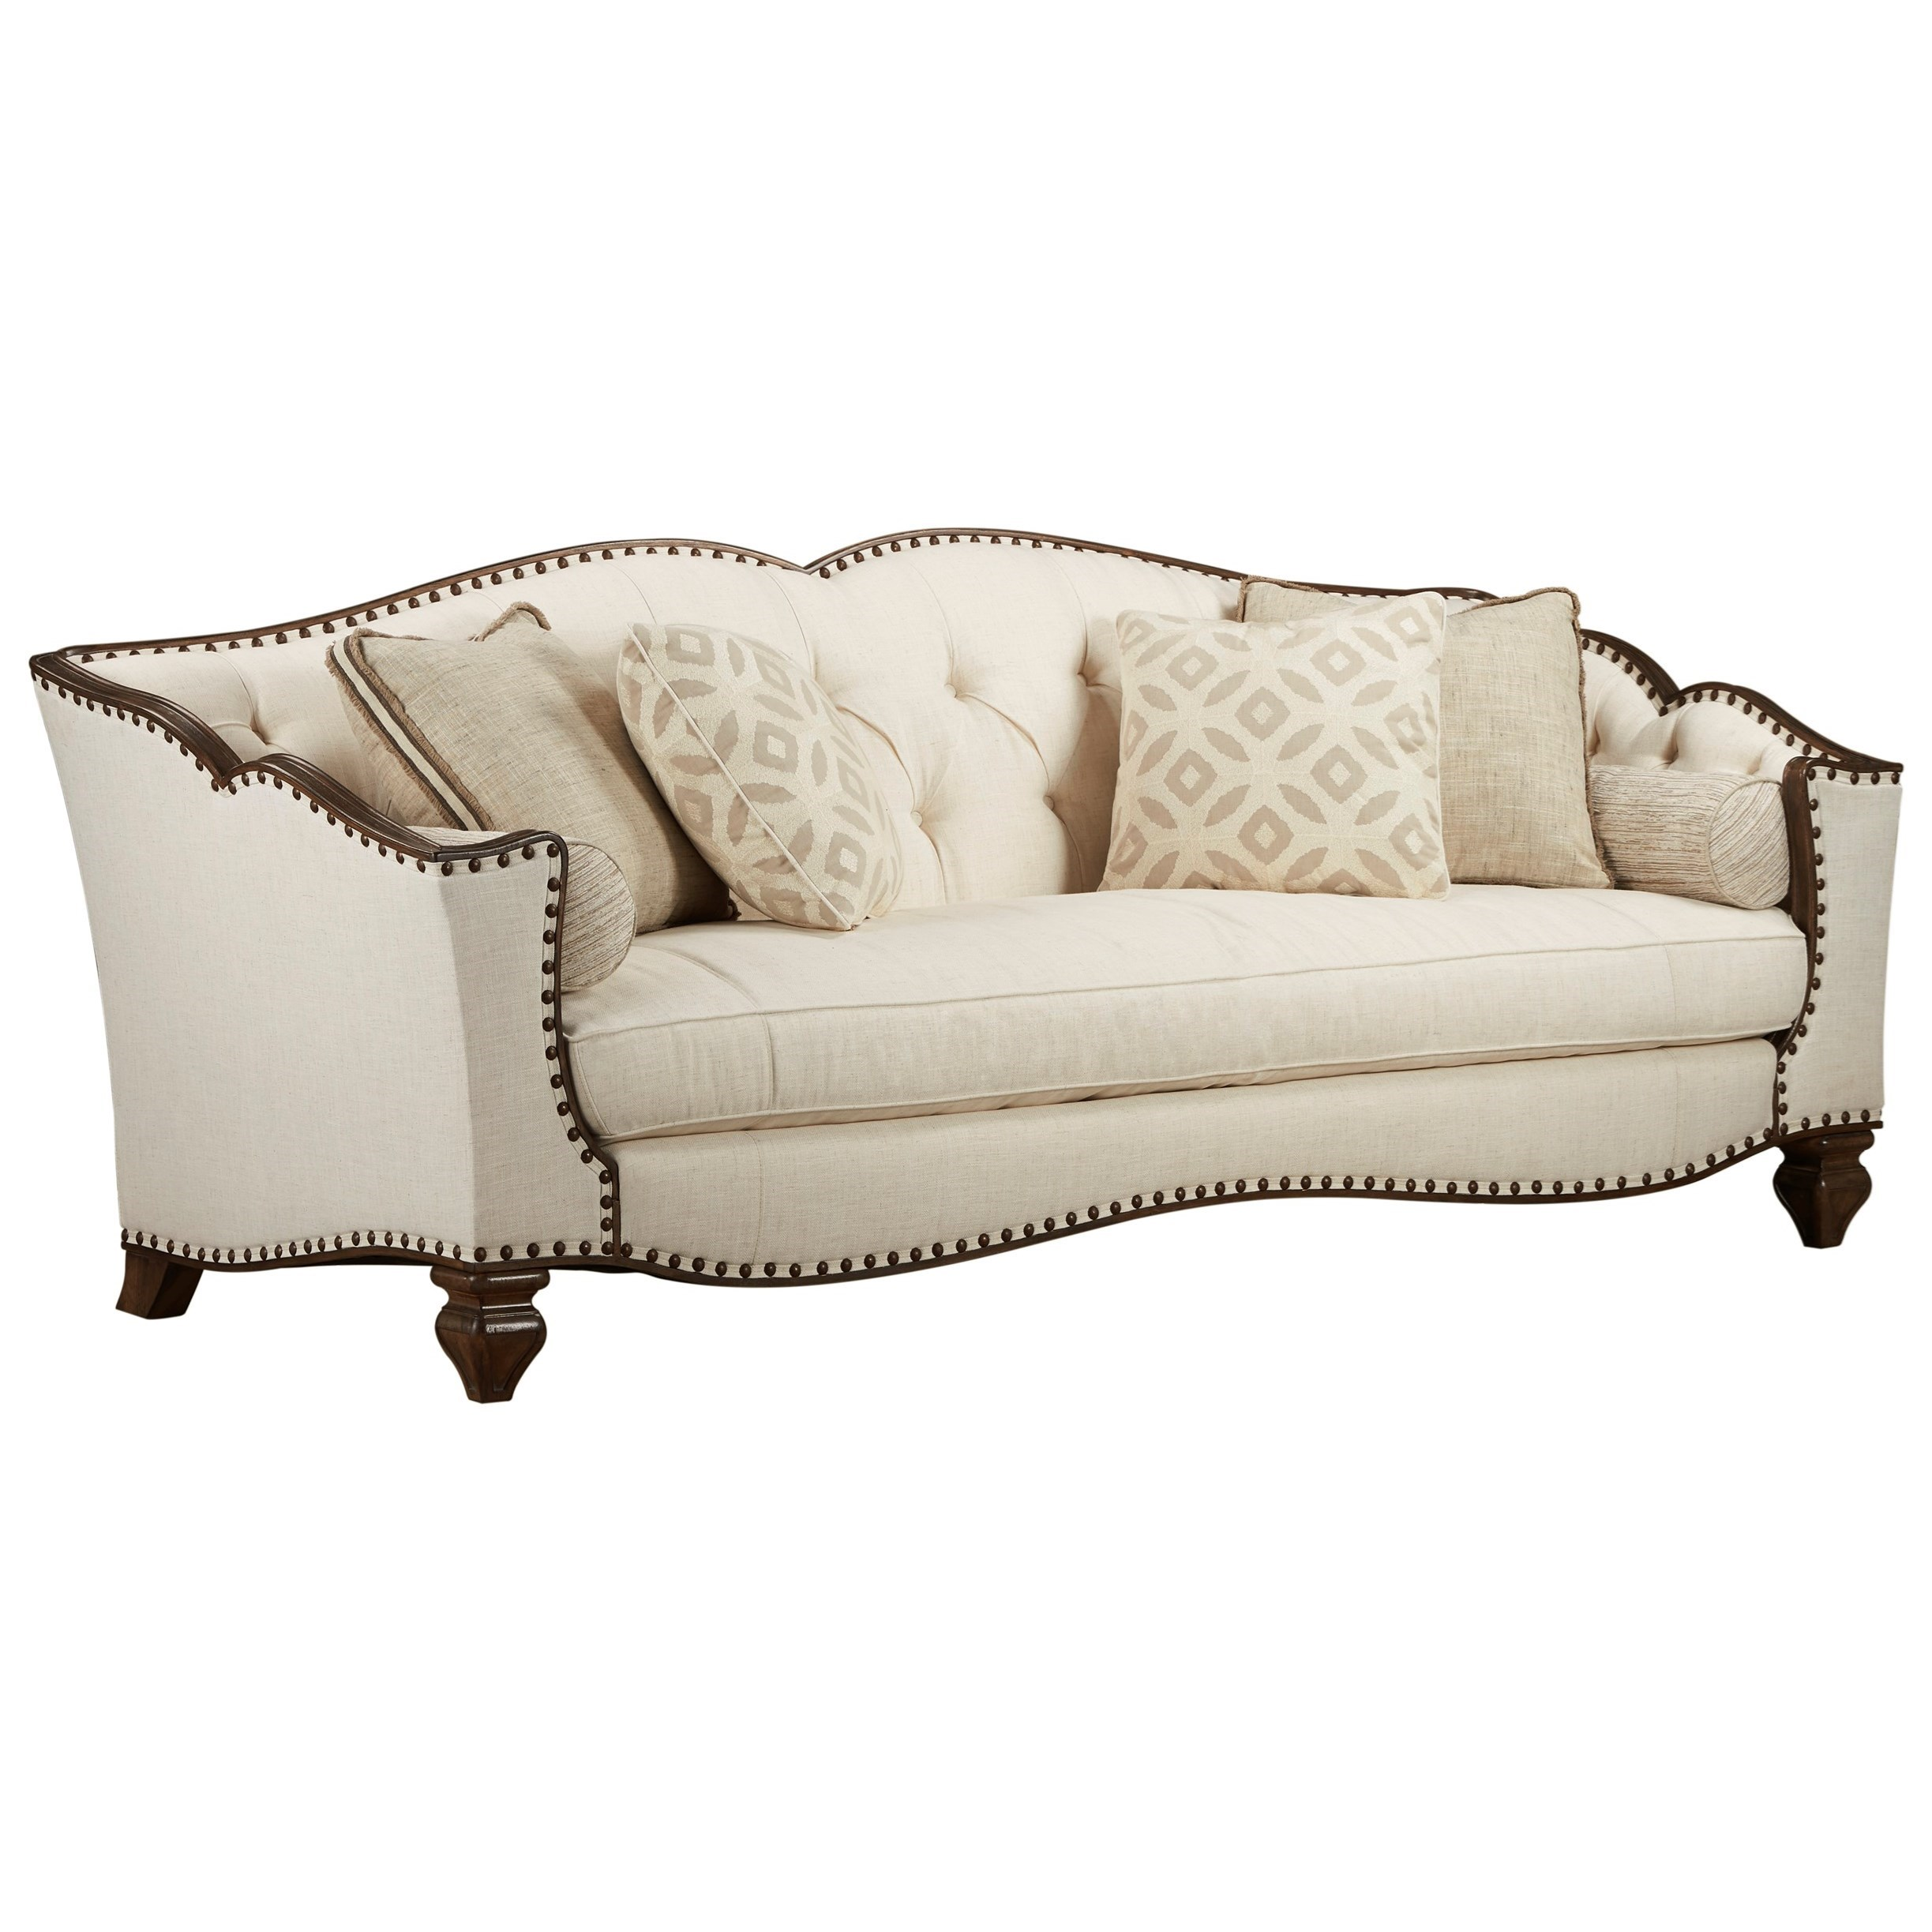 Vintage Salvage Upholstery Sofa by A.R.T. Furniture Inc at Dream Home Interiors